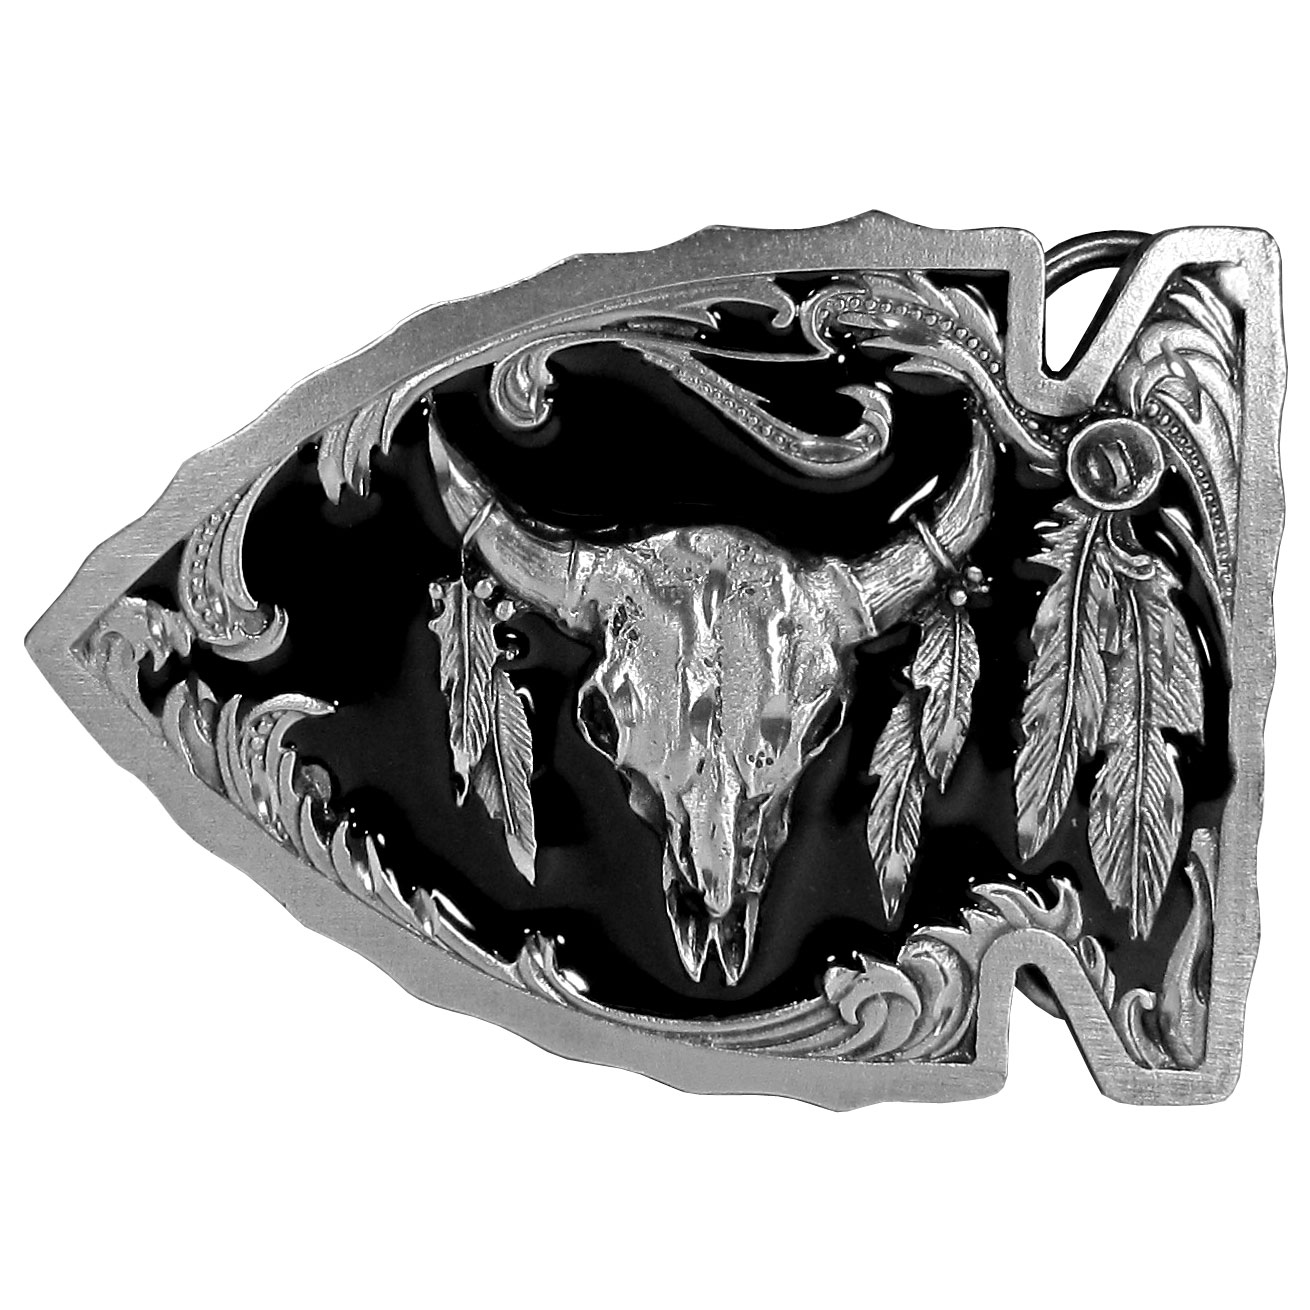 "Buffalo Skull in Arrowhead Enameled Belt Buckle - ""This belt buckle is shaped like an arrowhead with an animal skull and feathers on top with diamond cut accents.  This exquisitely carved buckle is made of fully cast metal with a standard bale that fits up to 2"""" belts."""